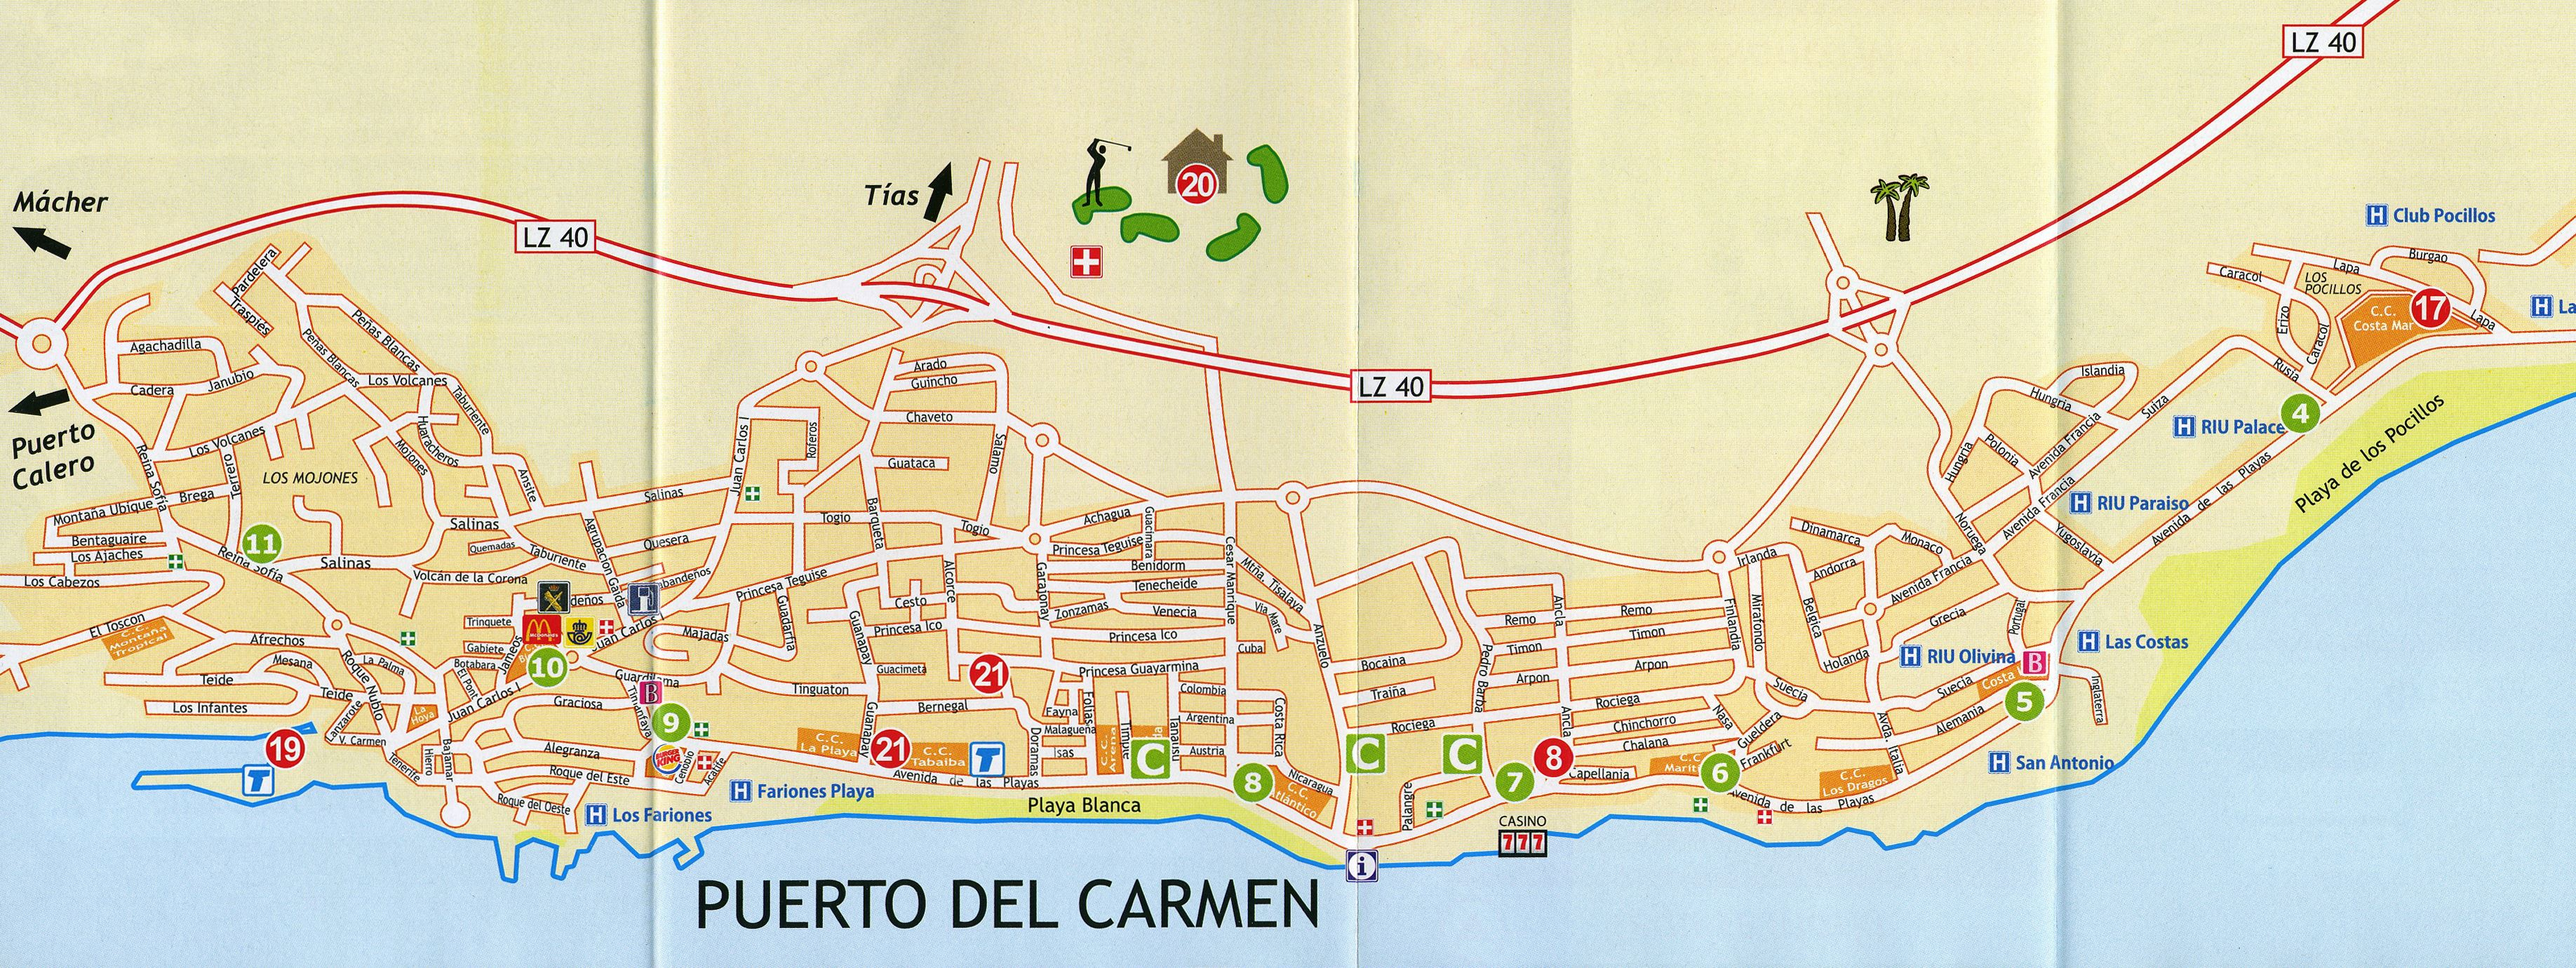 Map Of Spain Lanzarote.Large Puerto Del Carmen Maps For Free Download And Print High